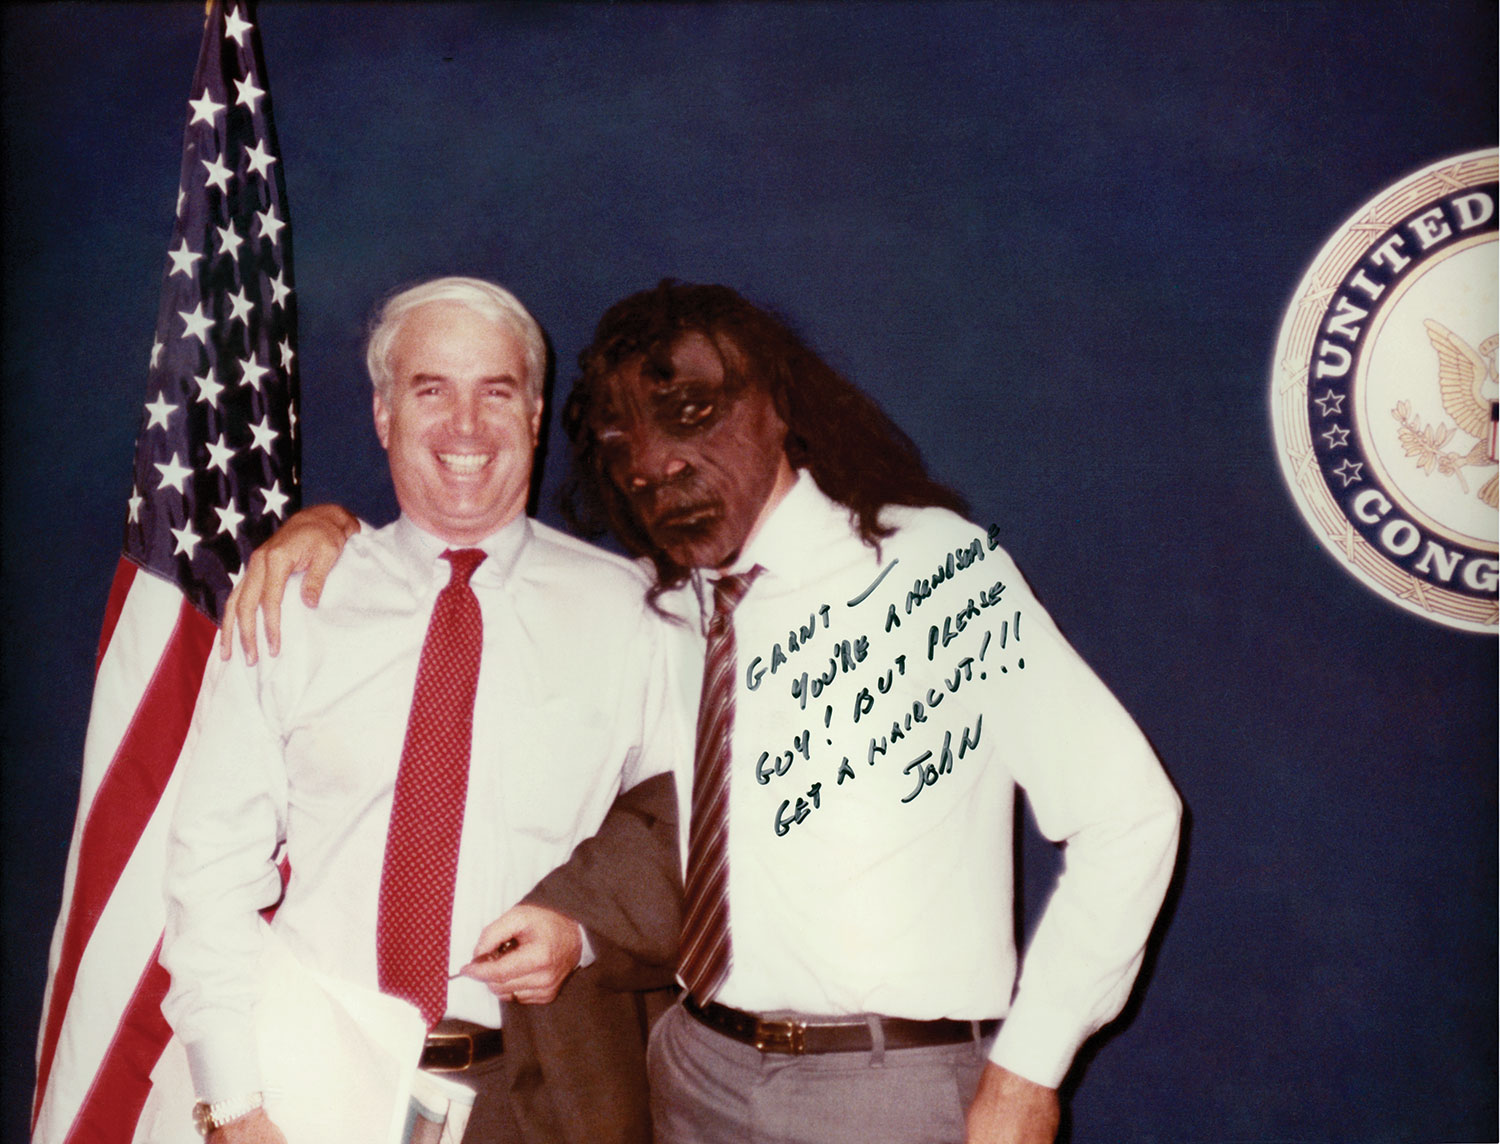 """Posing with Grant Woods, dressed as a caveman, McCain wrote, """"You're a handsome guy! But please get a haircut,"""" circa 1984"""